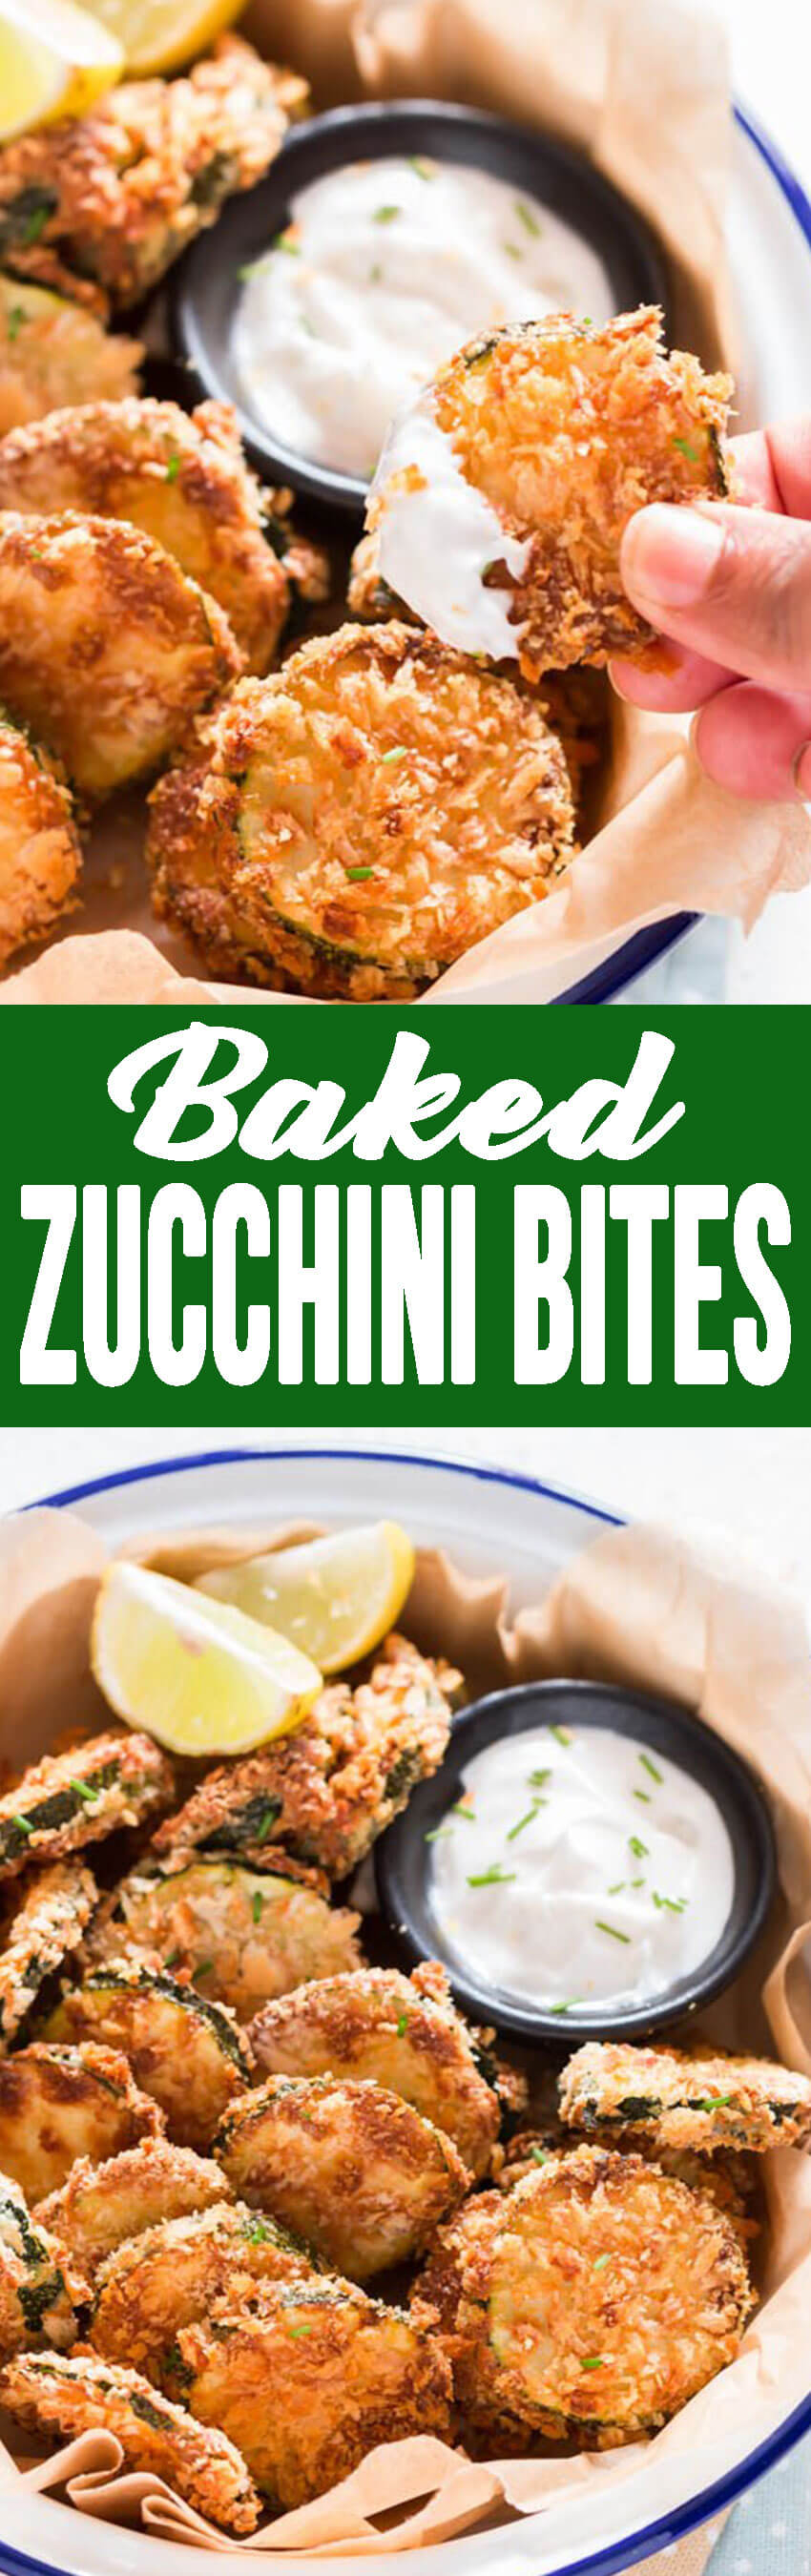 Baked Zucchini bites, are deliciously battered and baked, and absolutely addicting.